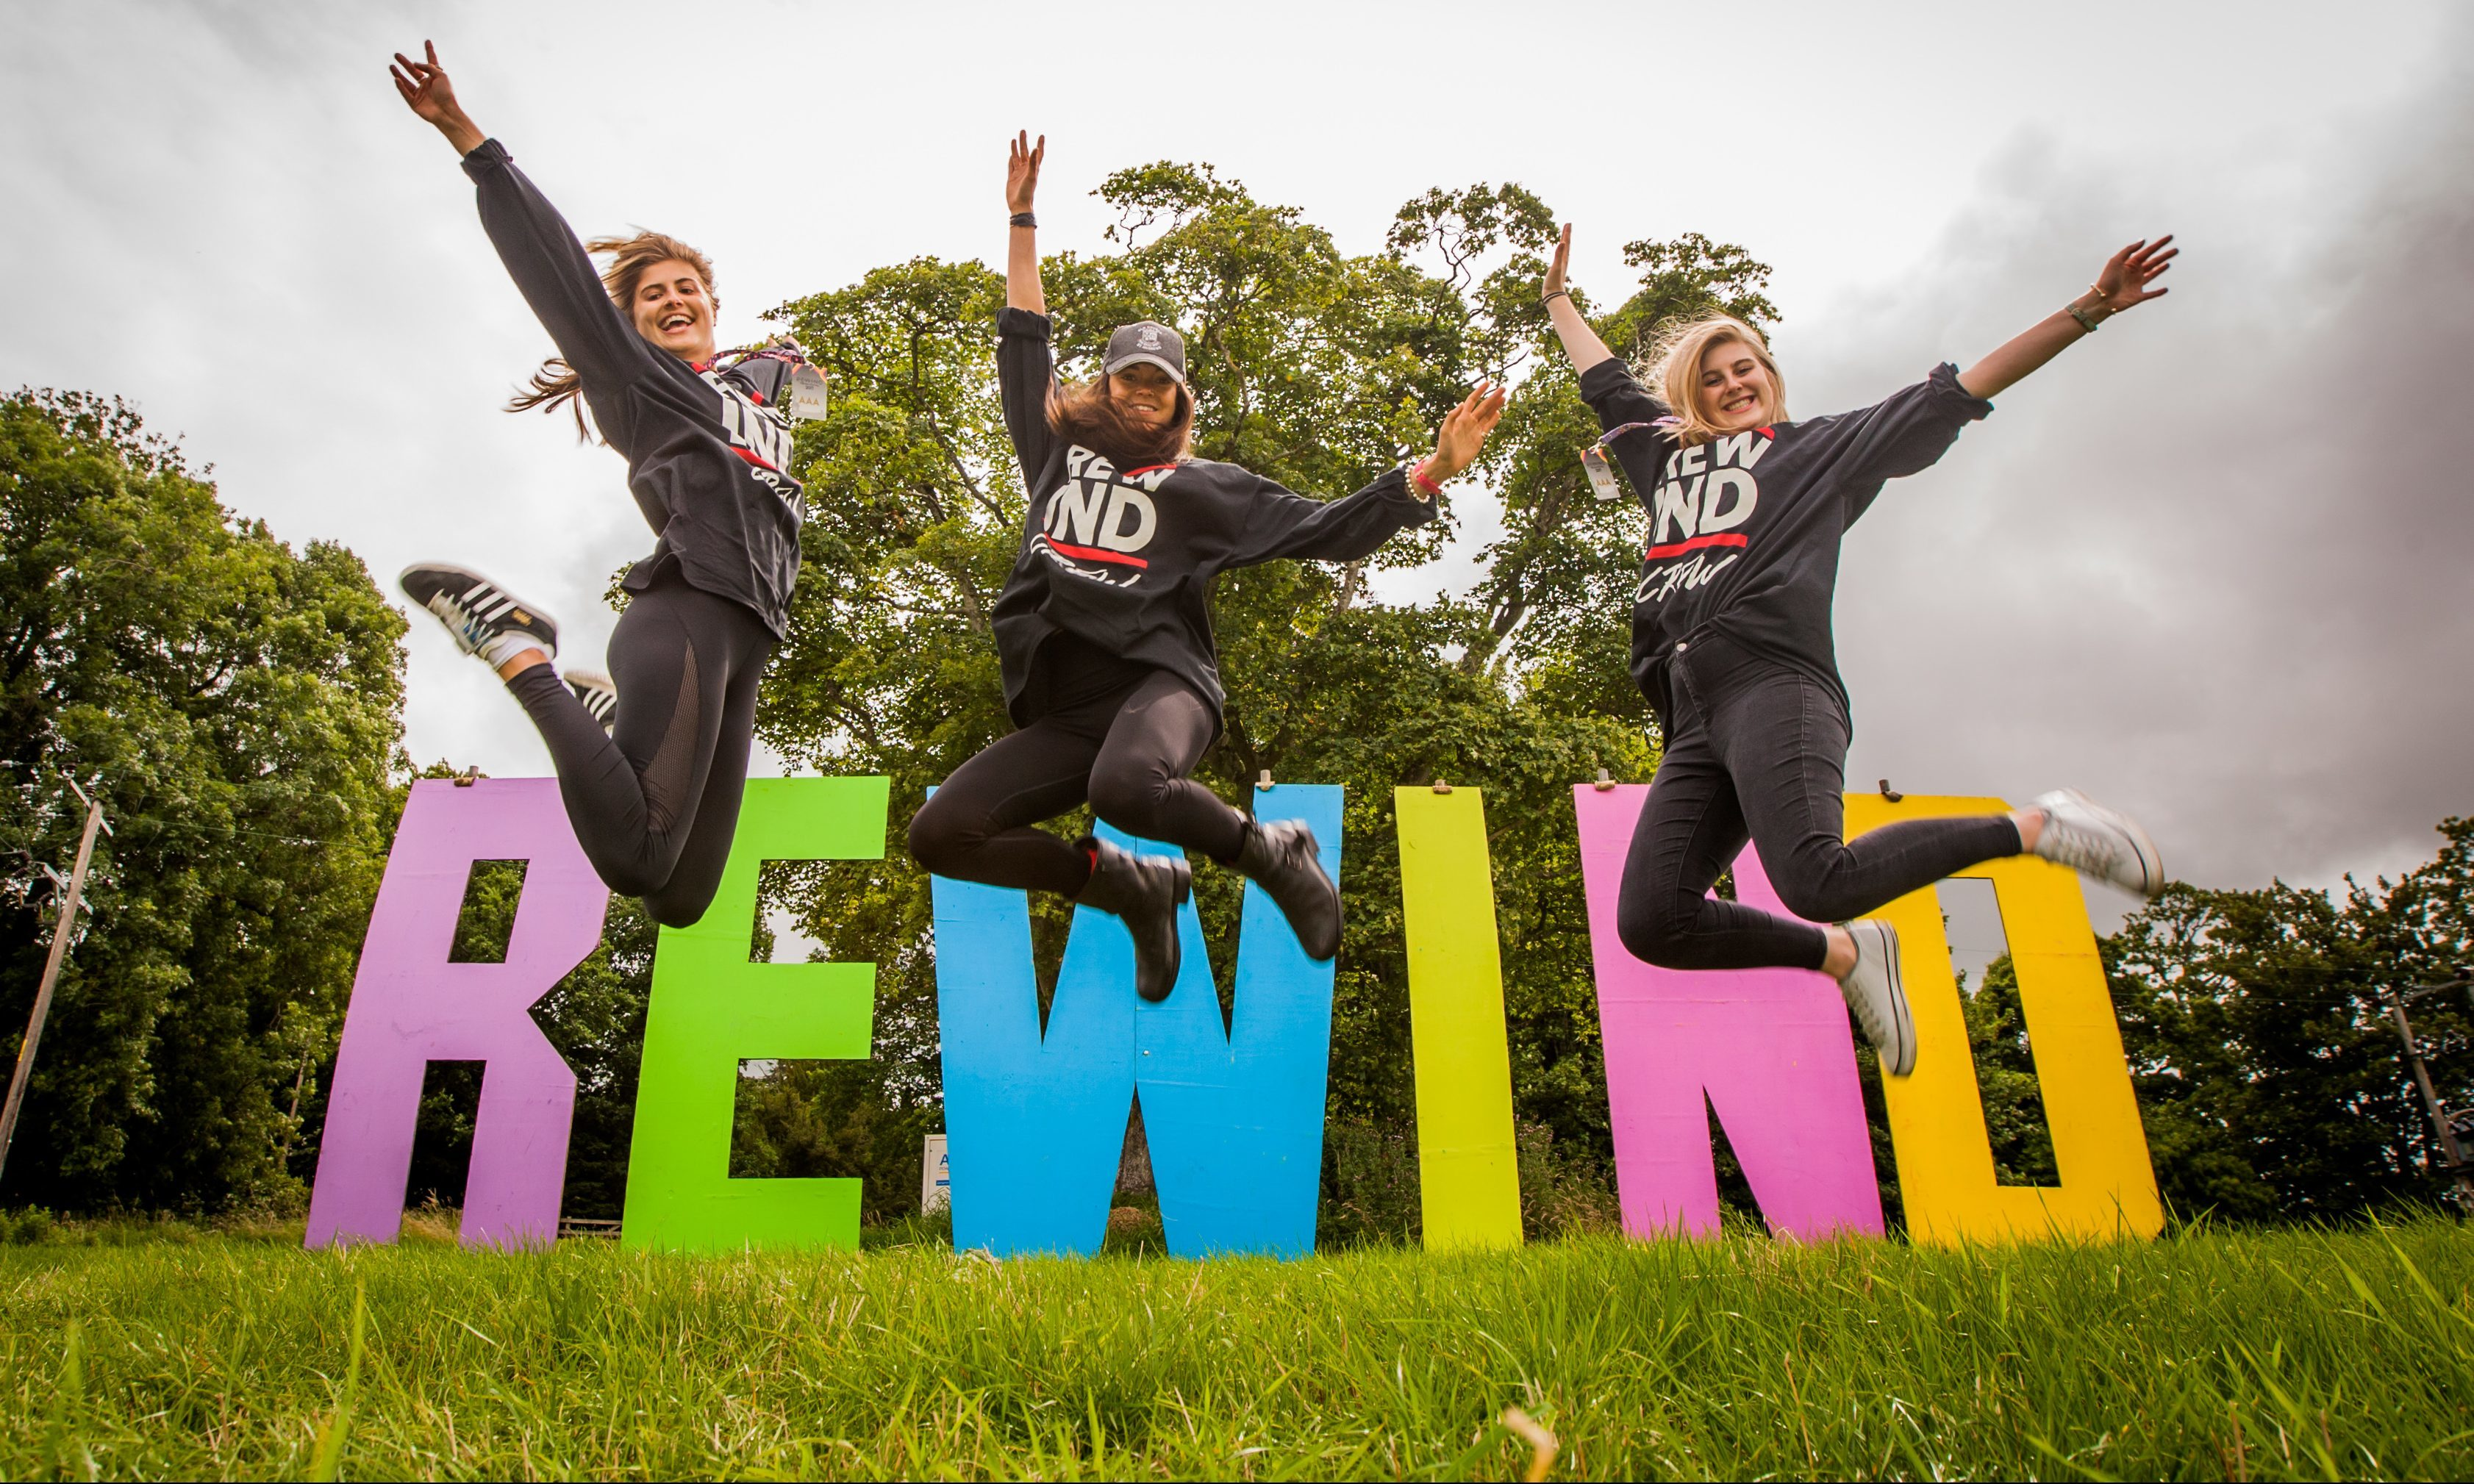 Crew members Isobel Peacock, Francesca Heartfield and Olivia Peacock are jumping for joy at being back at Rewind Scotland.